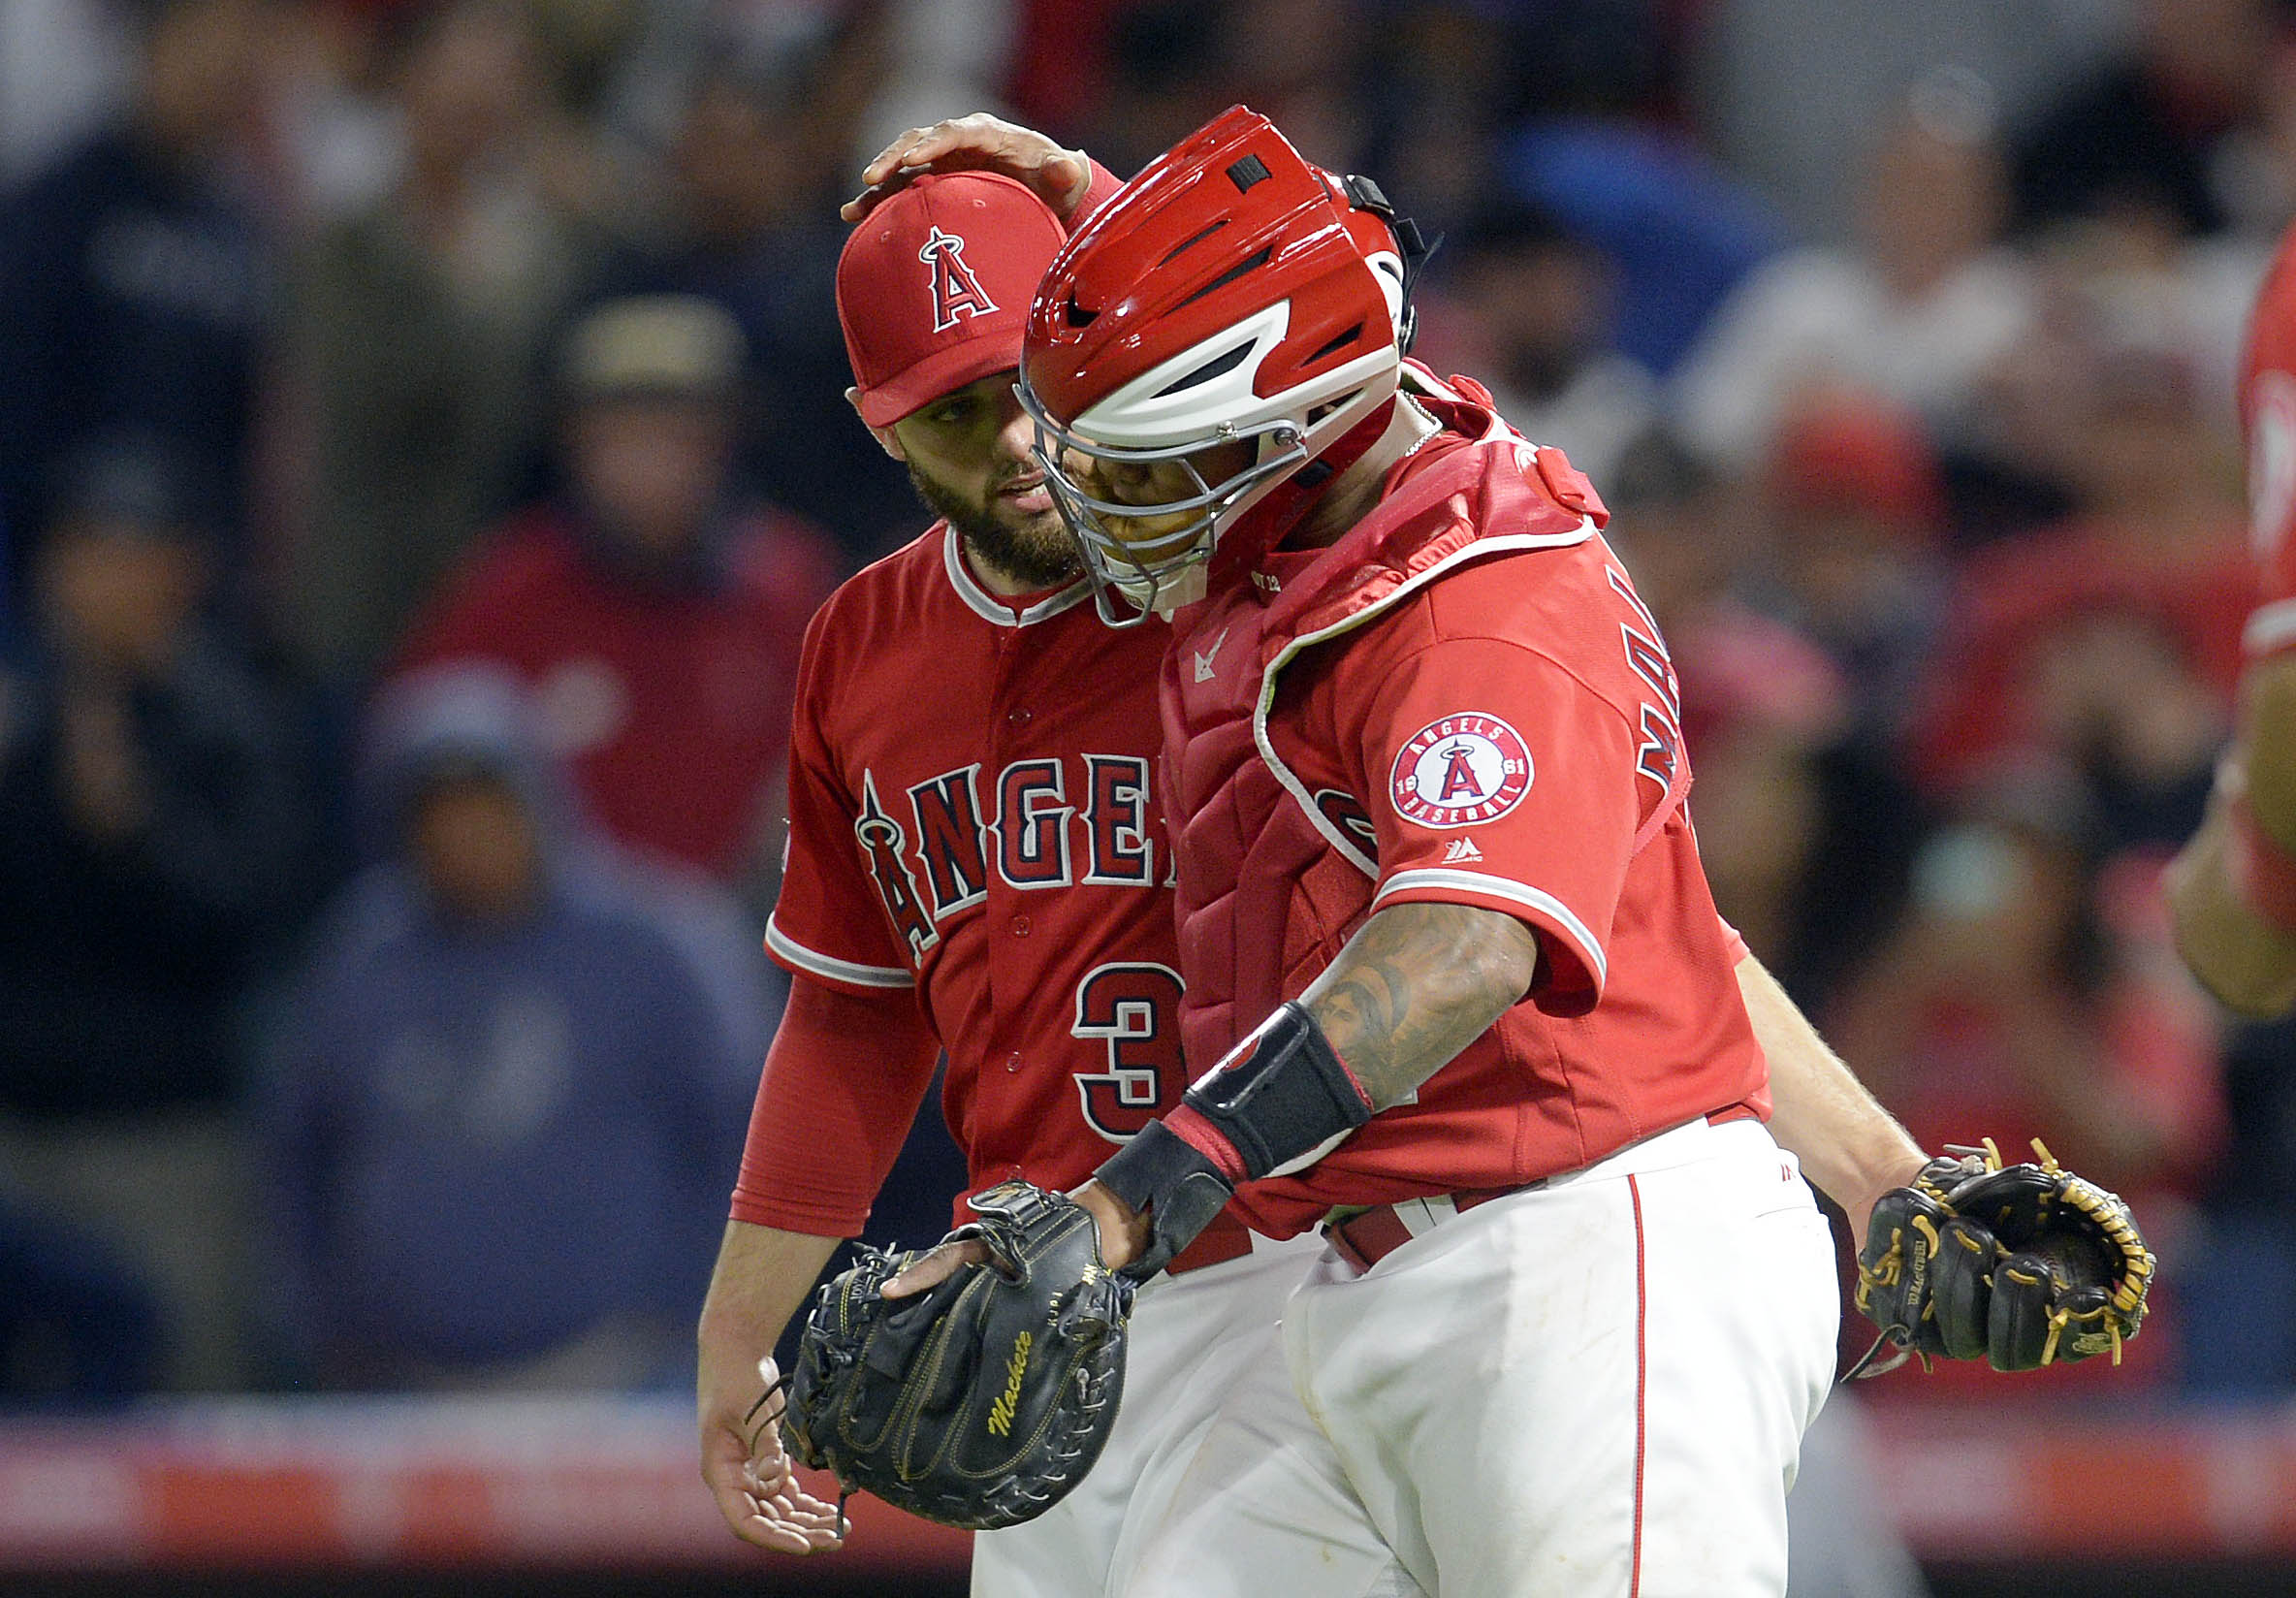 10002826-mlb-seattle-mariners-at-los-angeles-angels